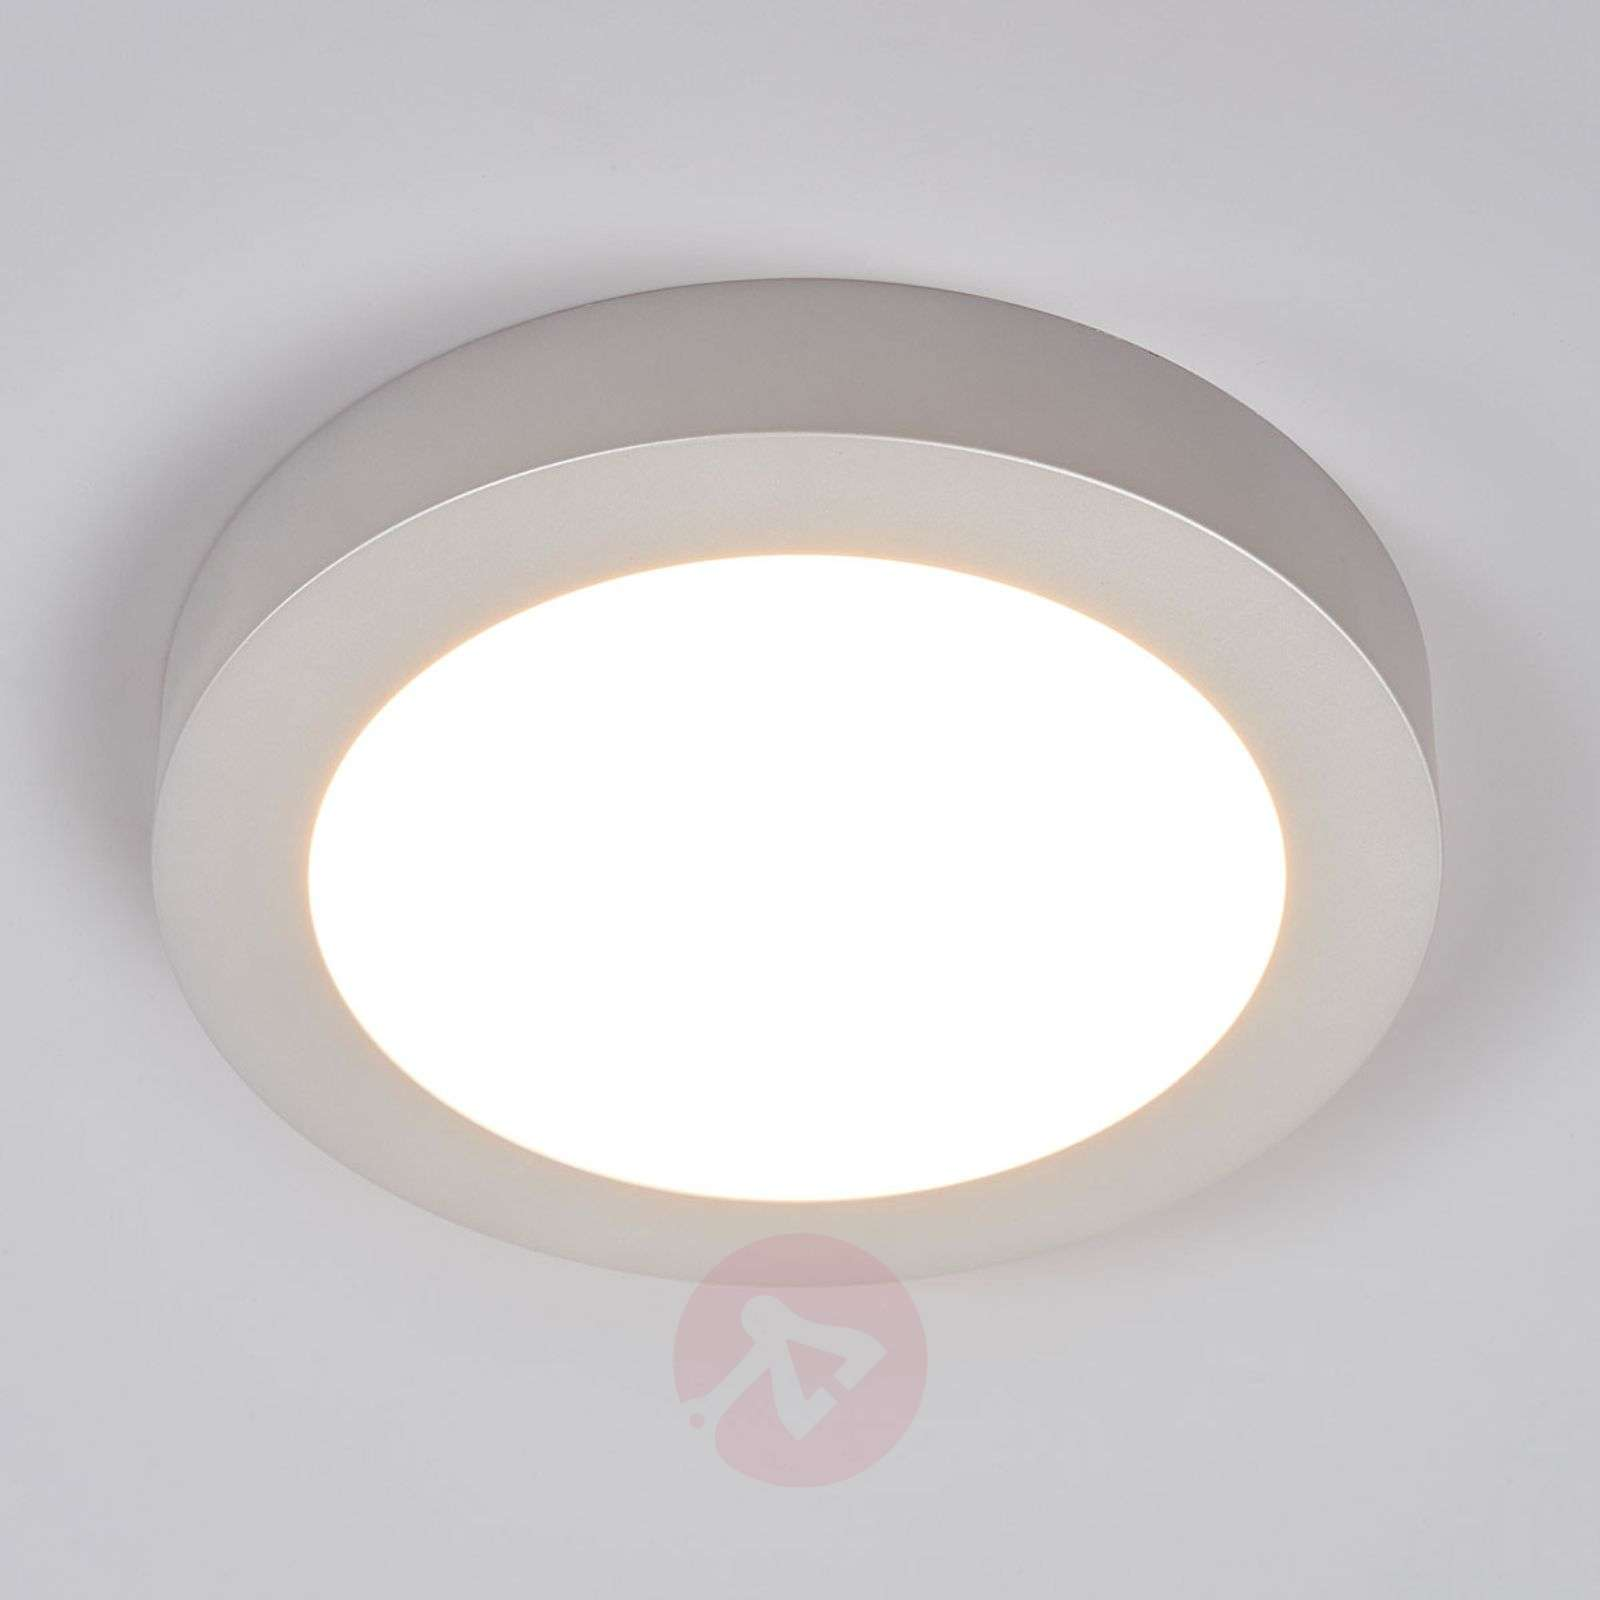 Lampa sufitowa LED Marlo do łazienek, IP44